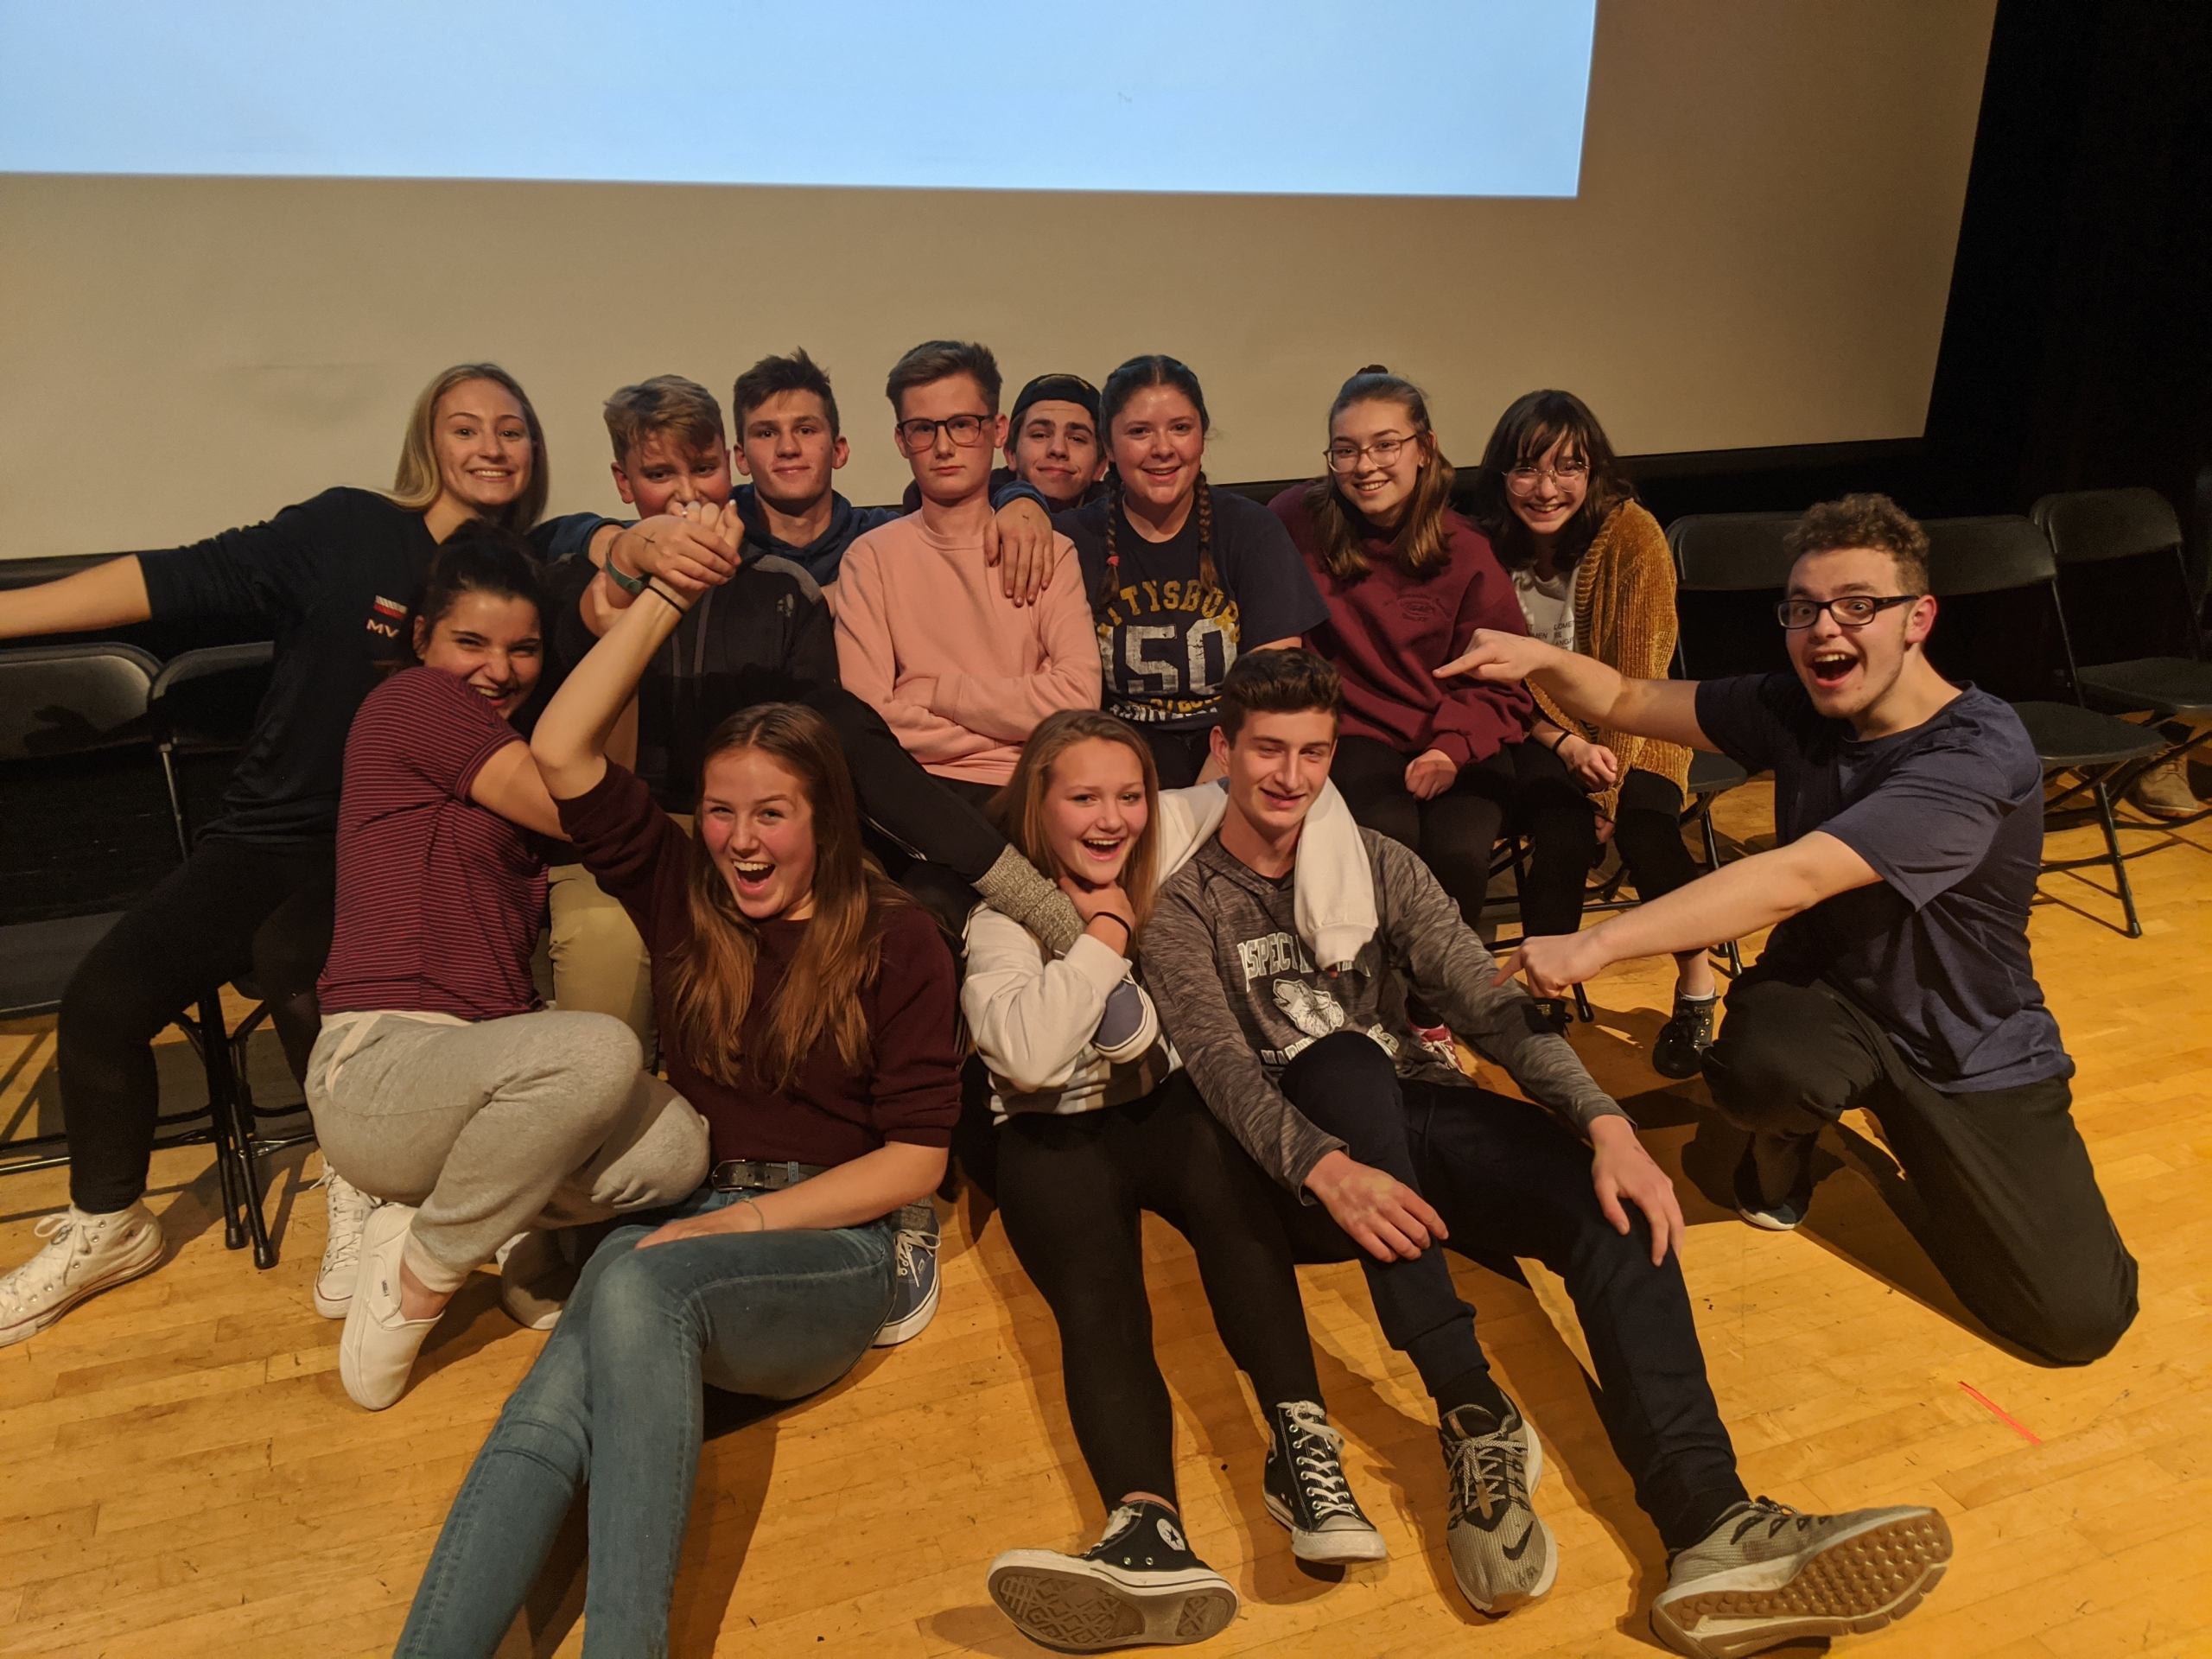 College stage hypnosis show